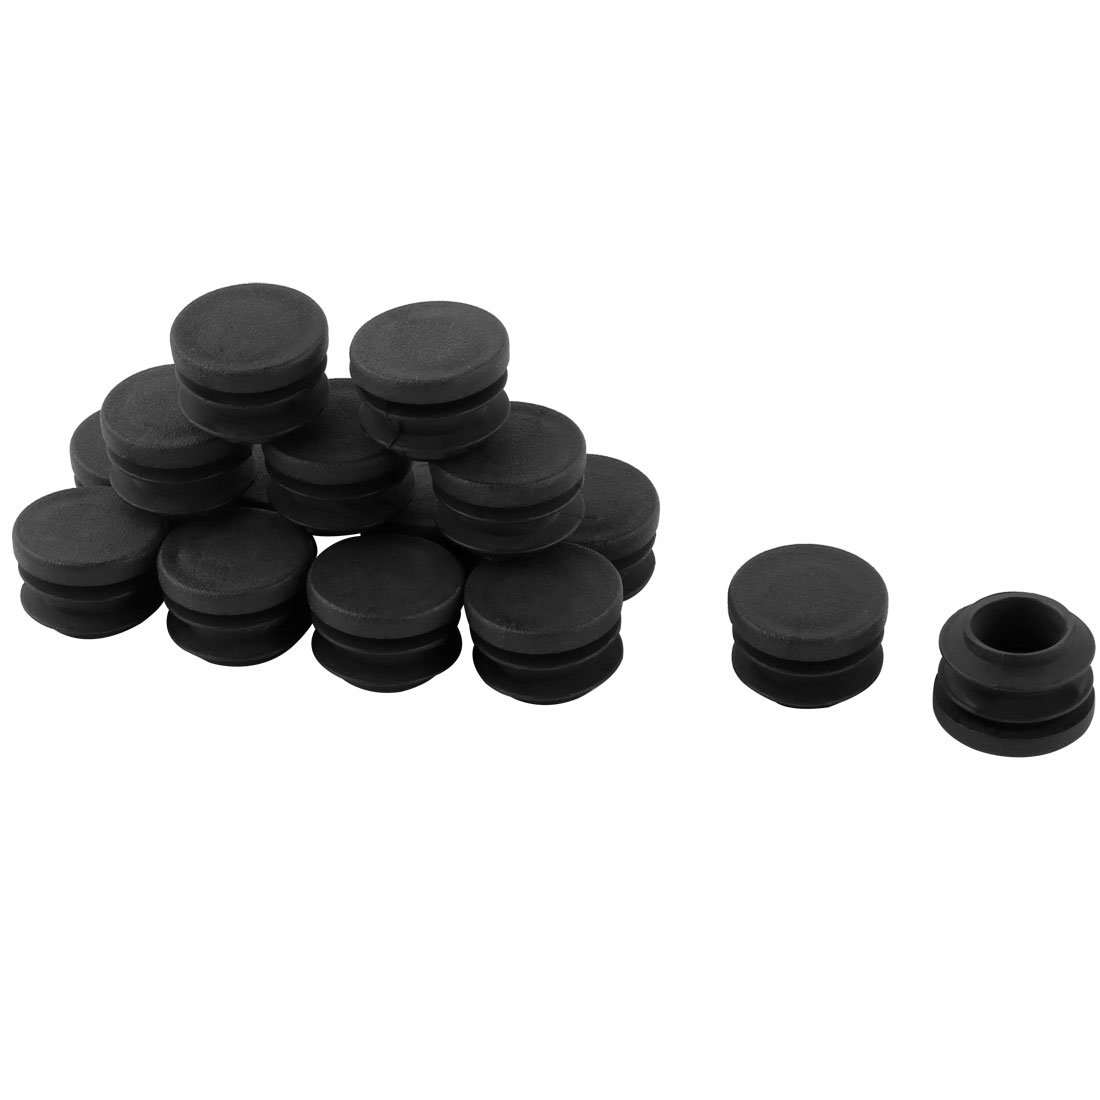 15 Pcs Black 19mm Dia Round Plastic Blanking End Cap Tubing Tube Insert